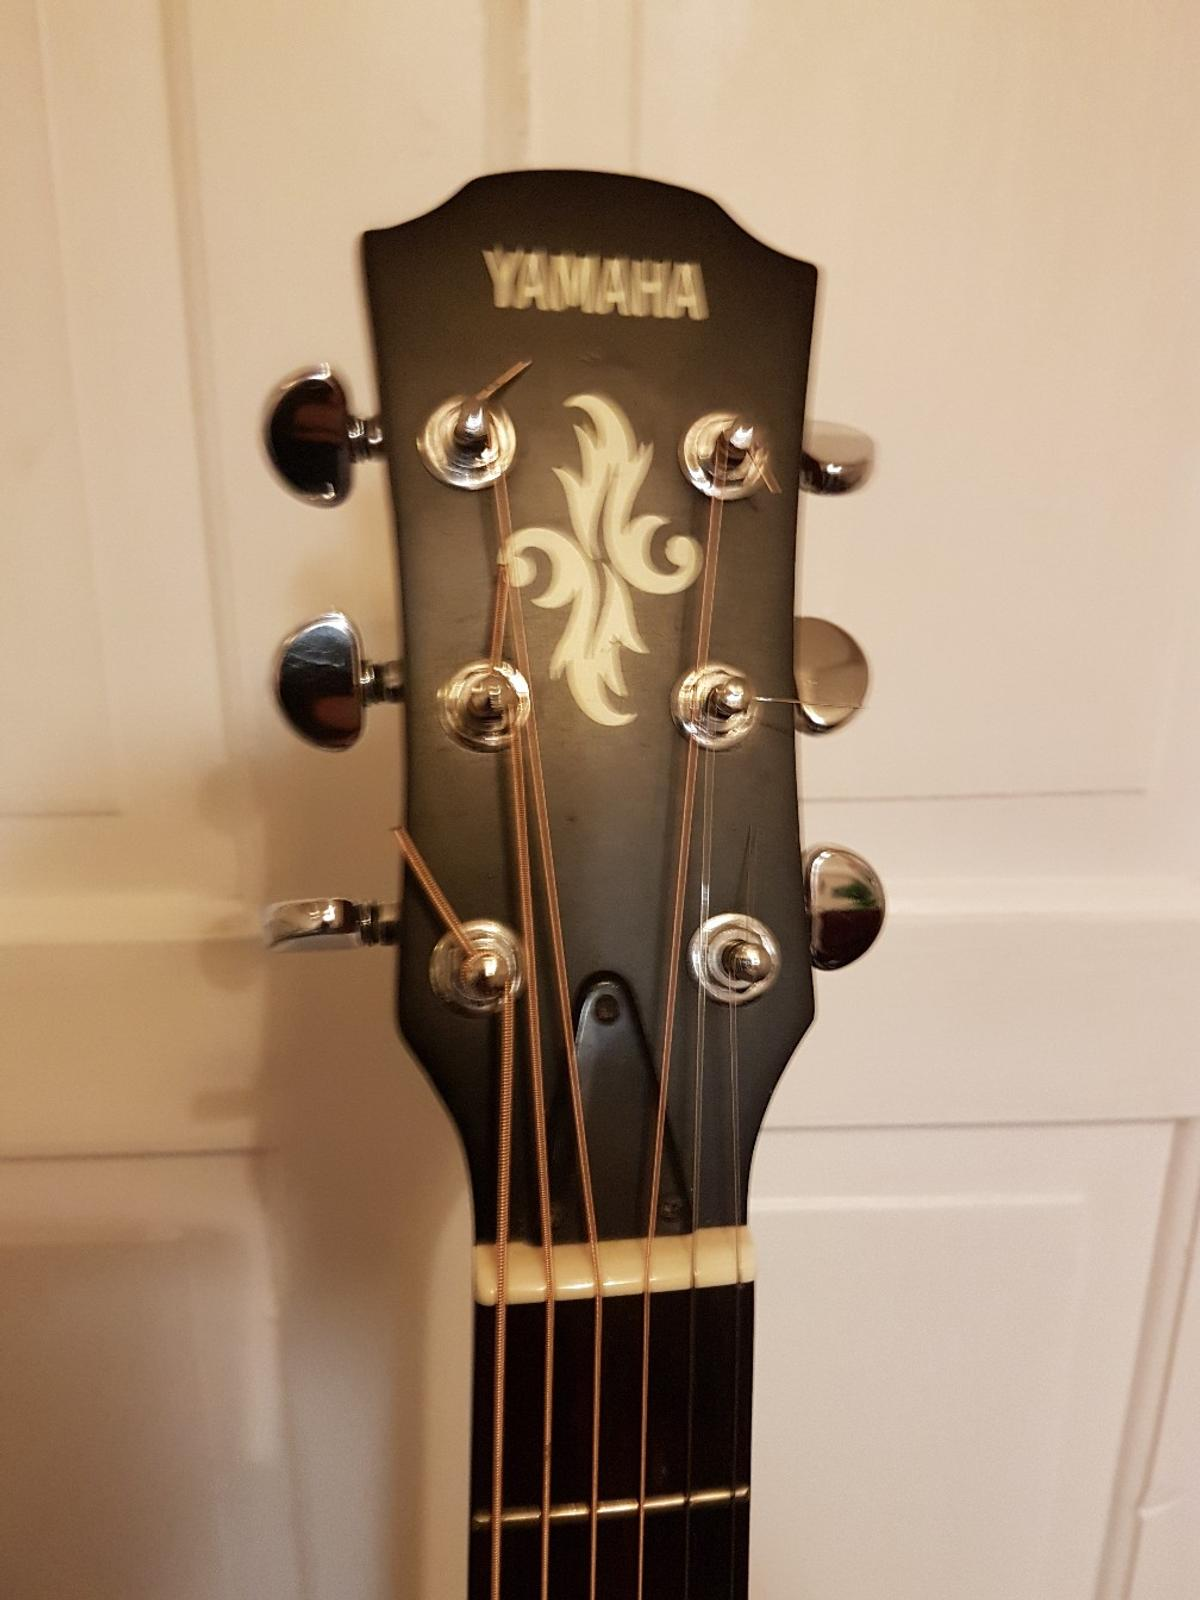 YAMAHA APX 4-A Electro Accustic Guitar+Case in M21 Manchester for